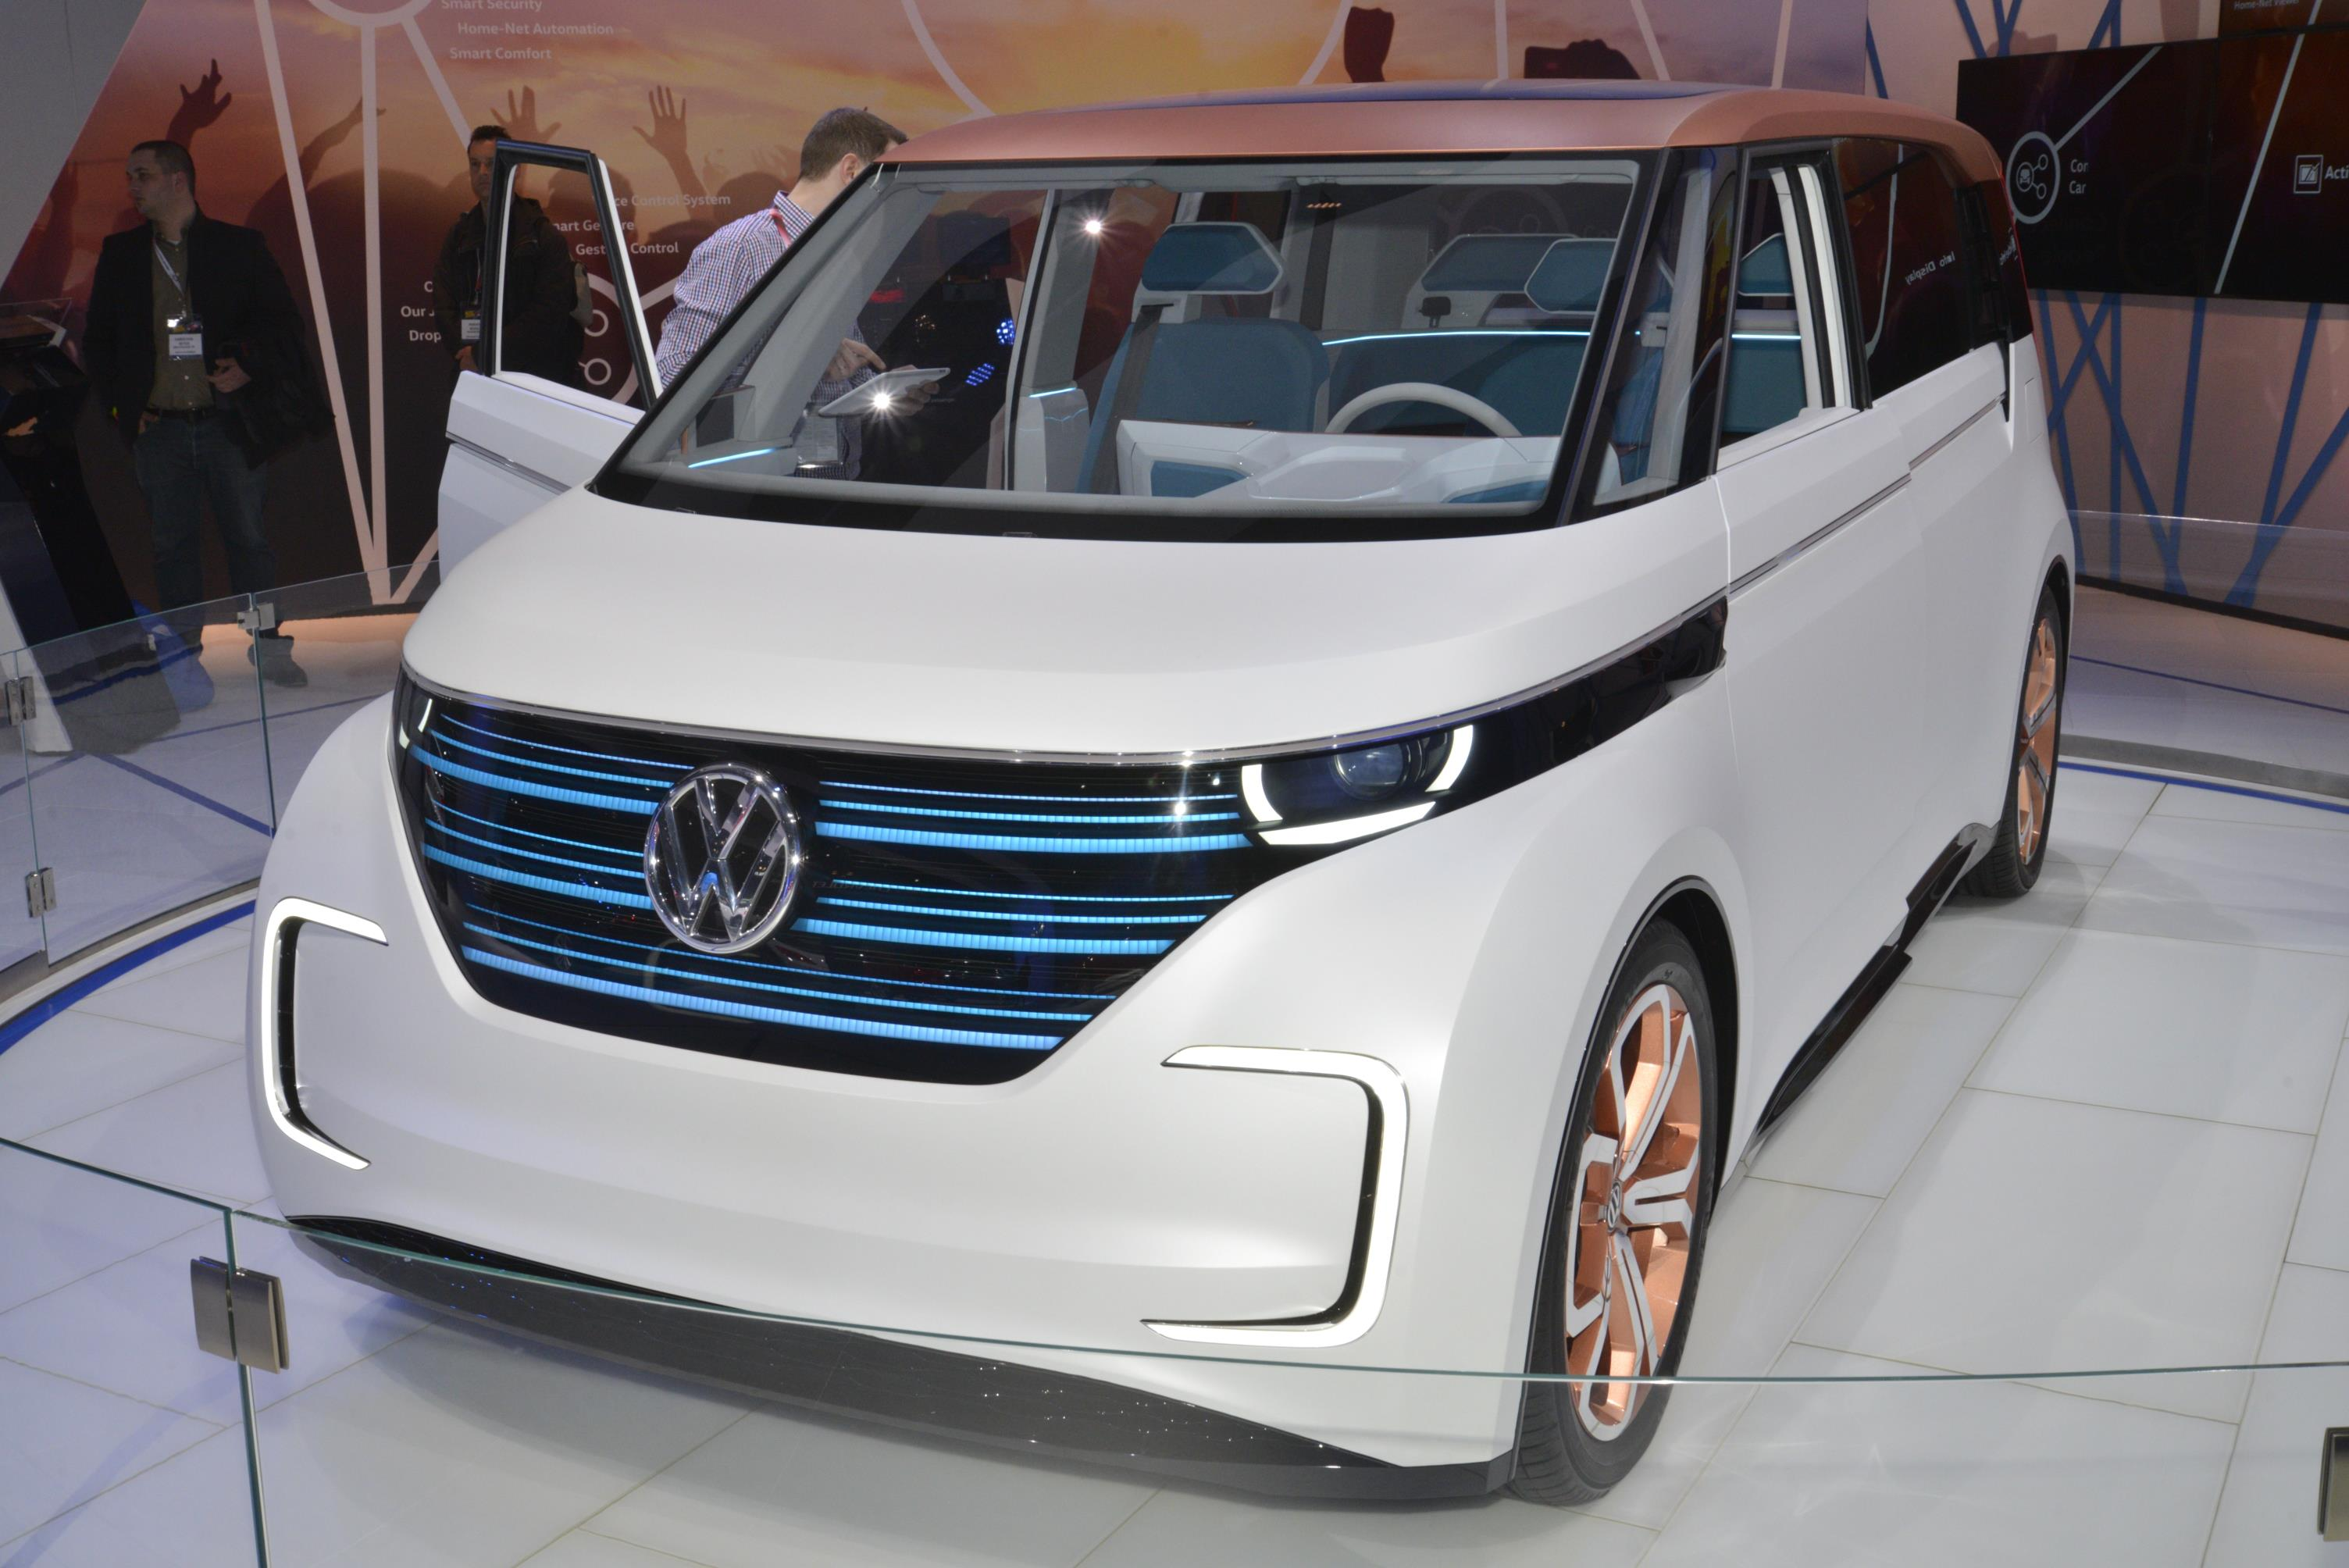 Volkswagen Group Focuses On Artificial Intelligence, Expands Munich Data Lab - autoevolution